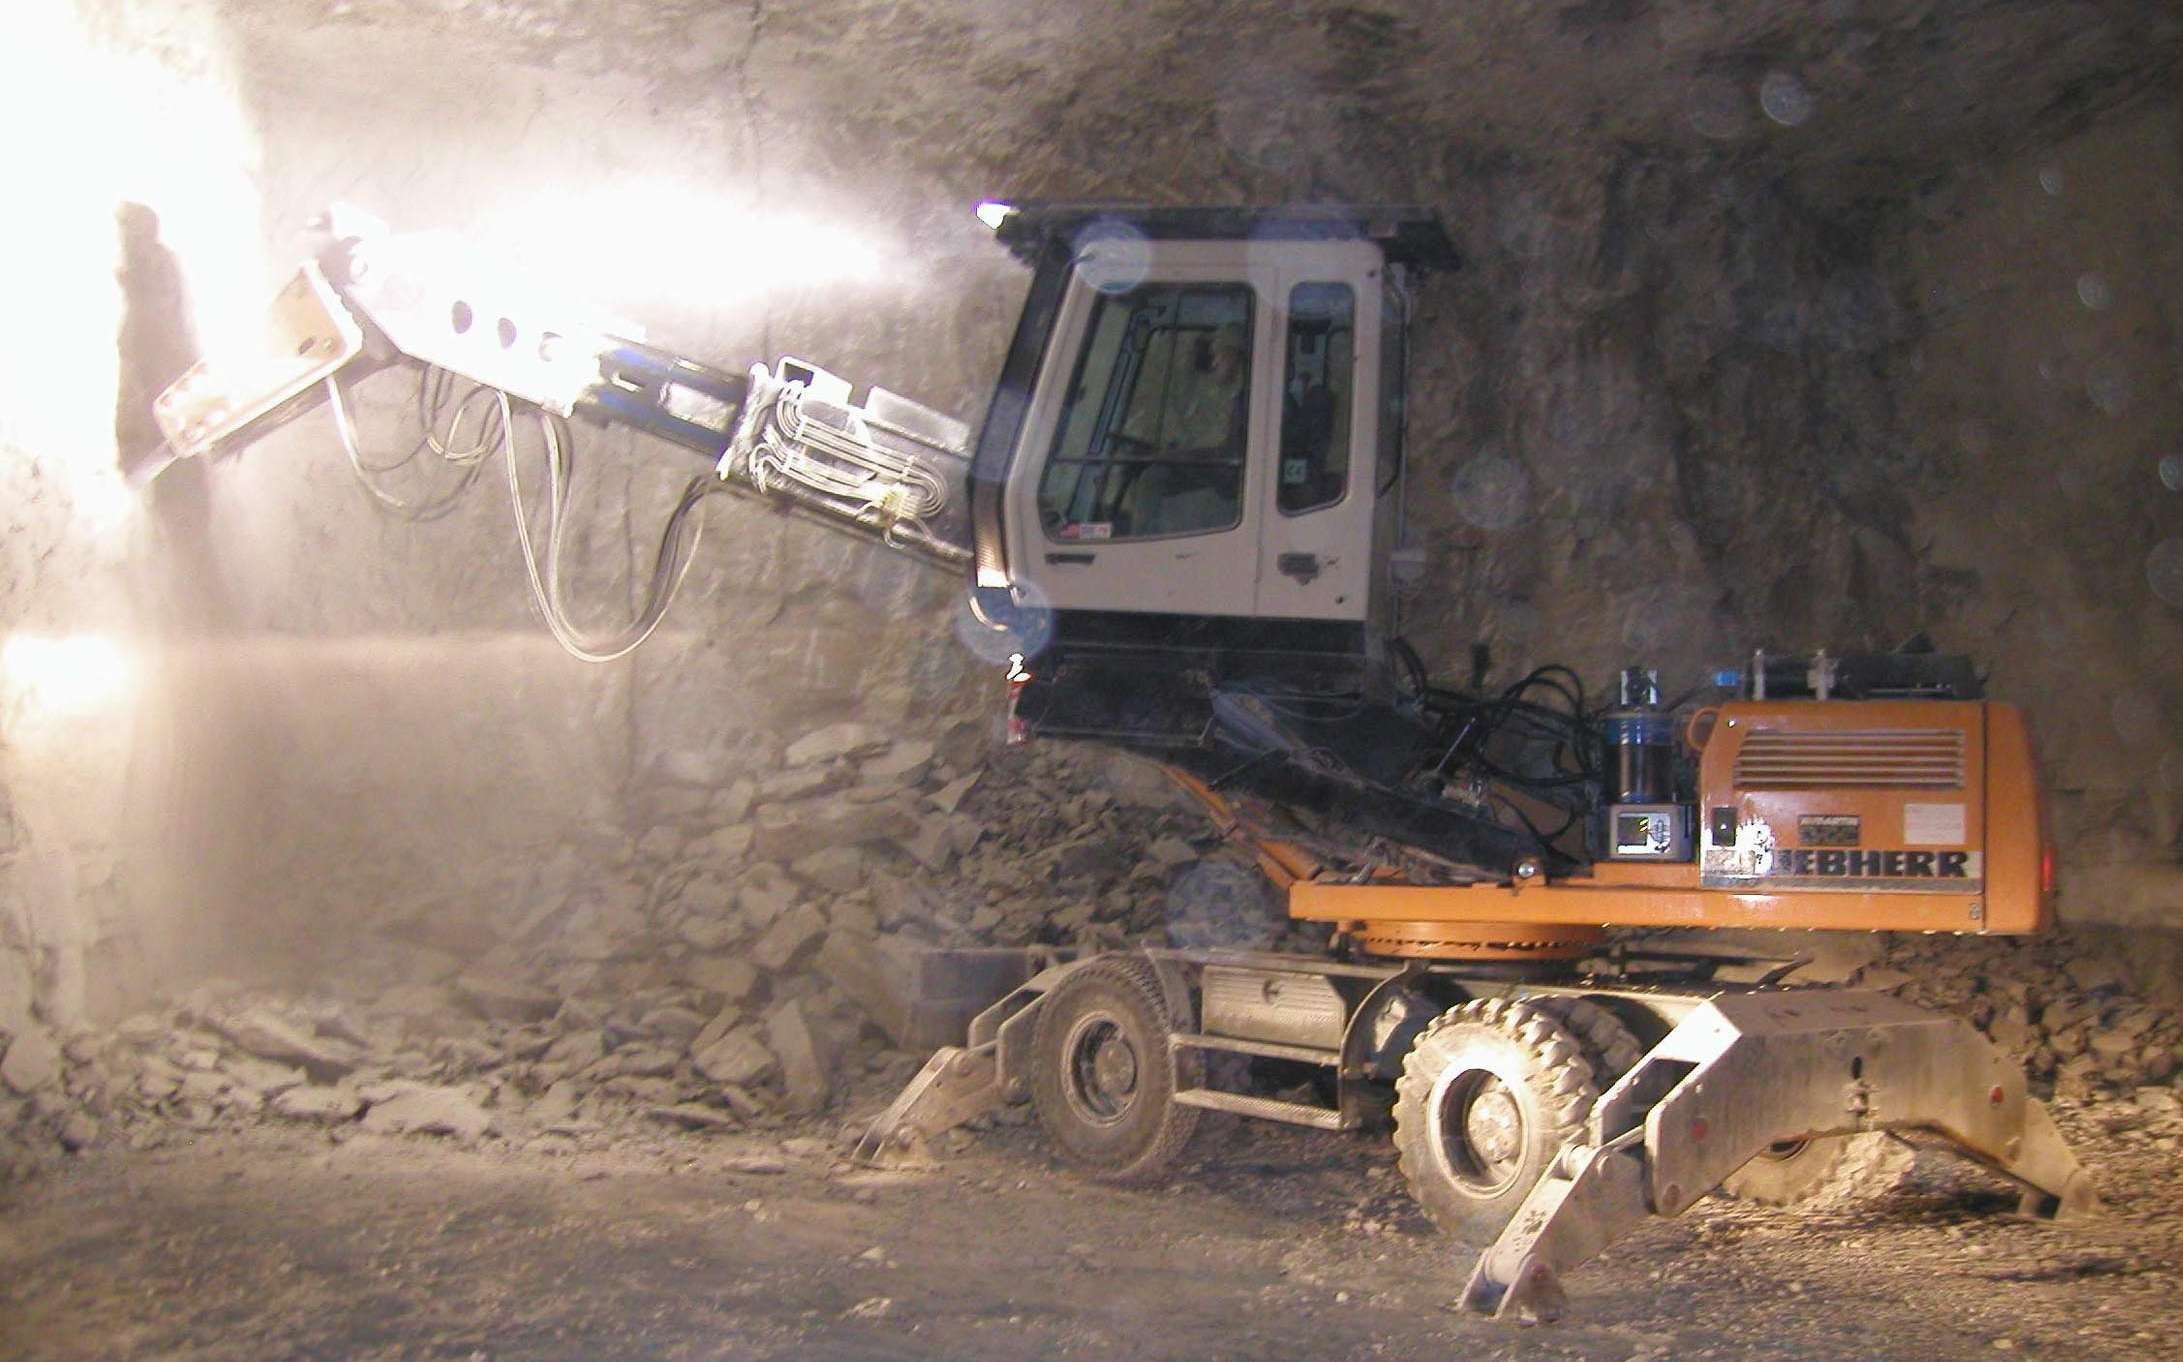 PWCE is Proud to Introduce to the Mining Industry, the PWCE Scaler Underground Mining Tools